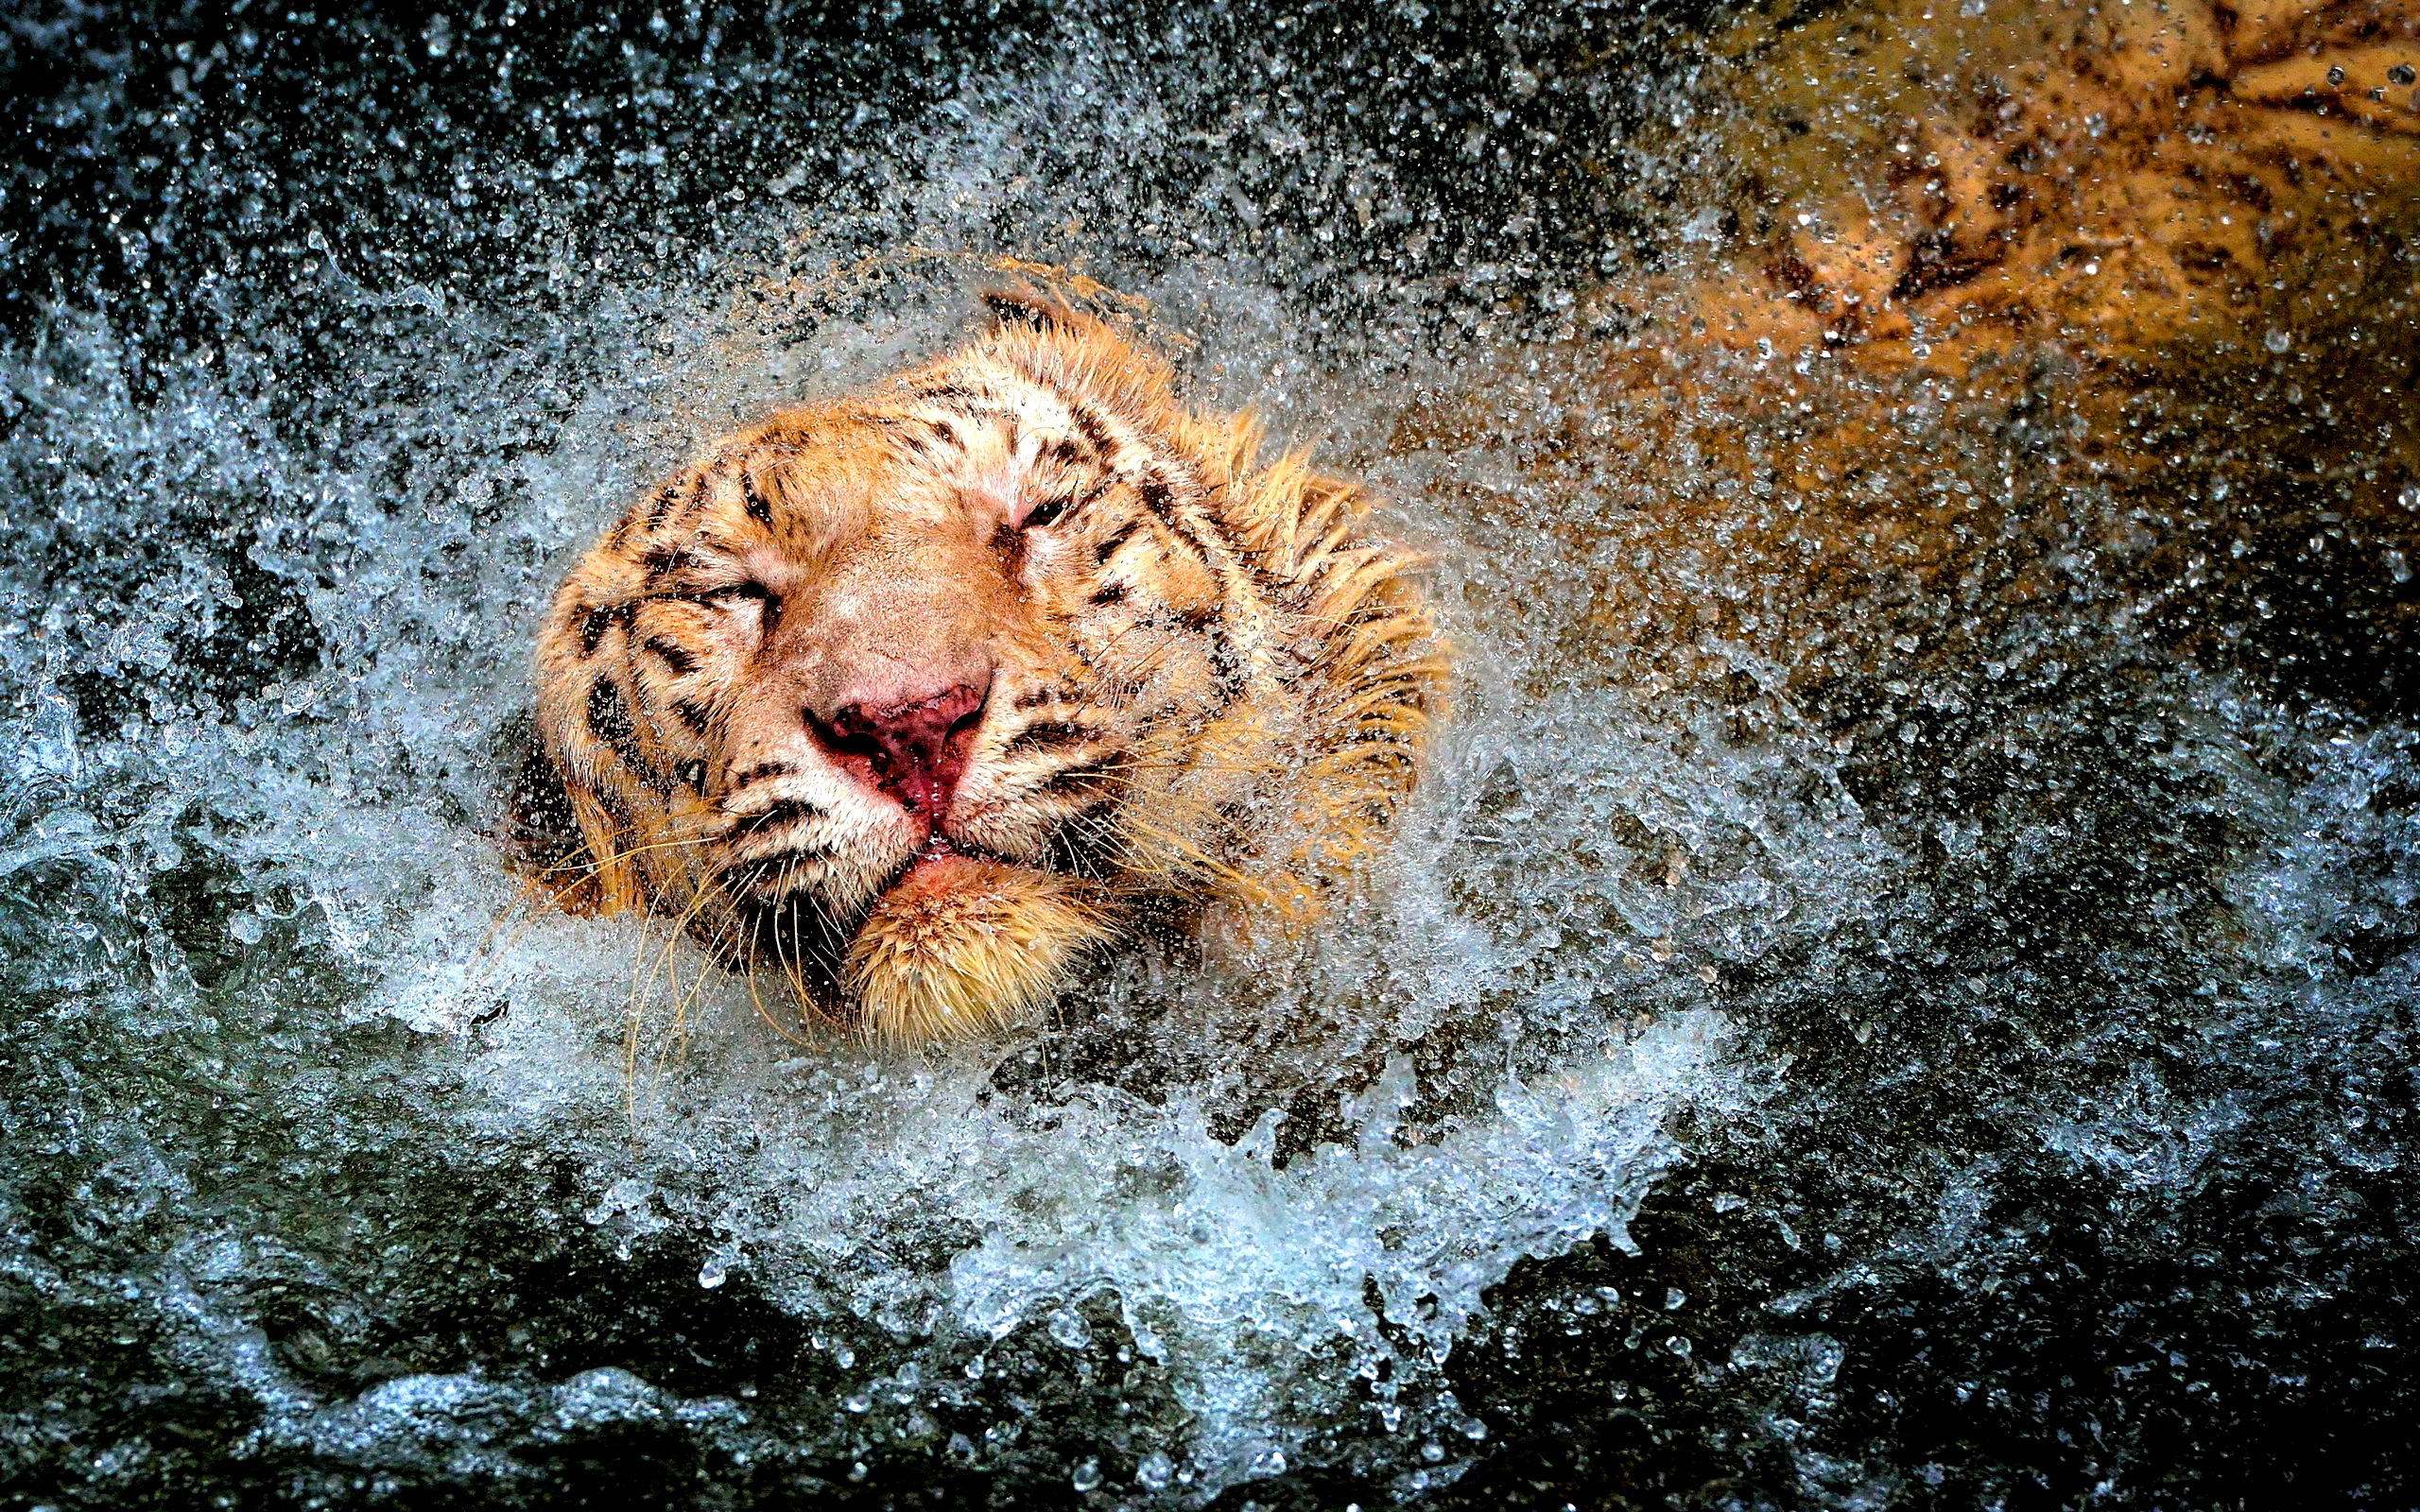 Tiger water fun